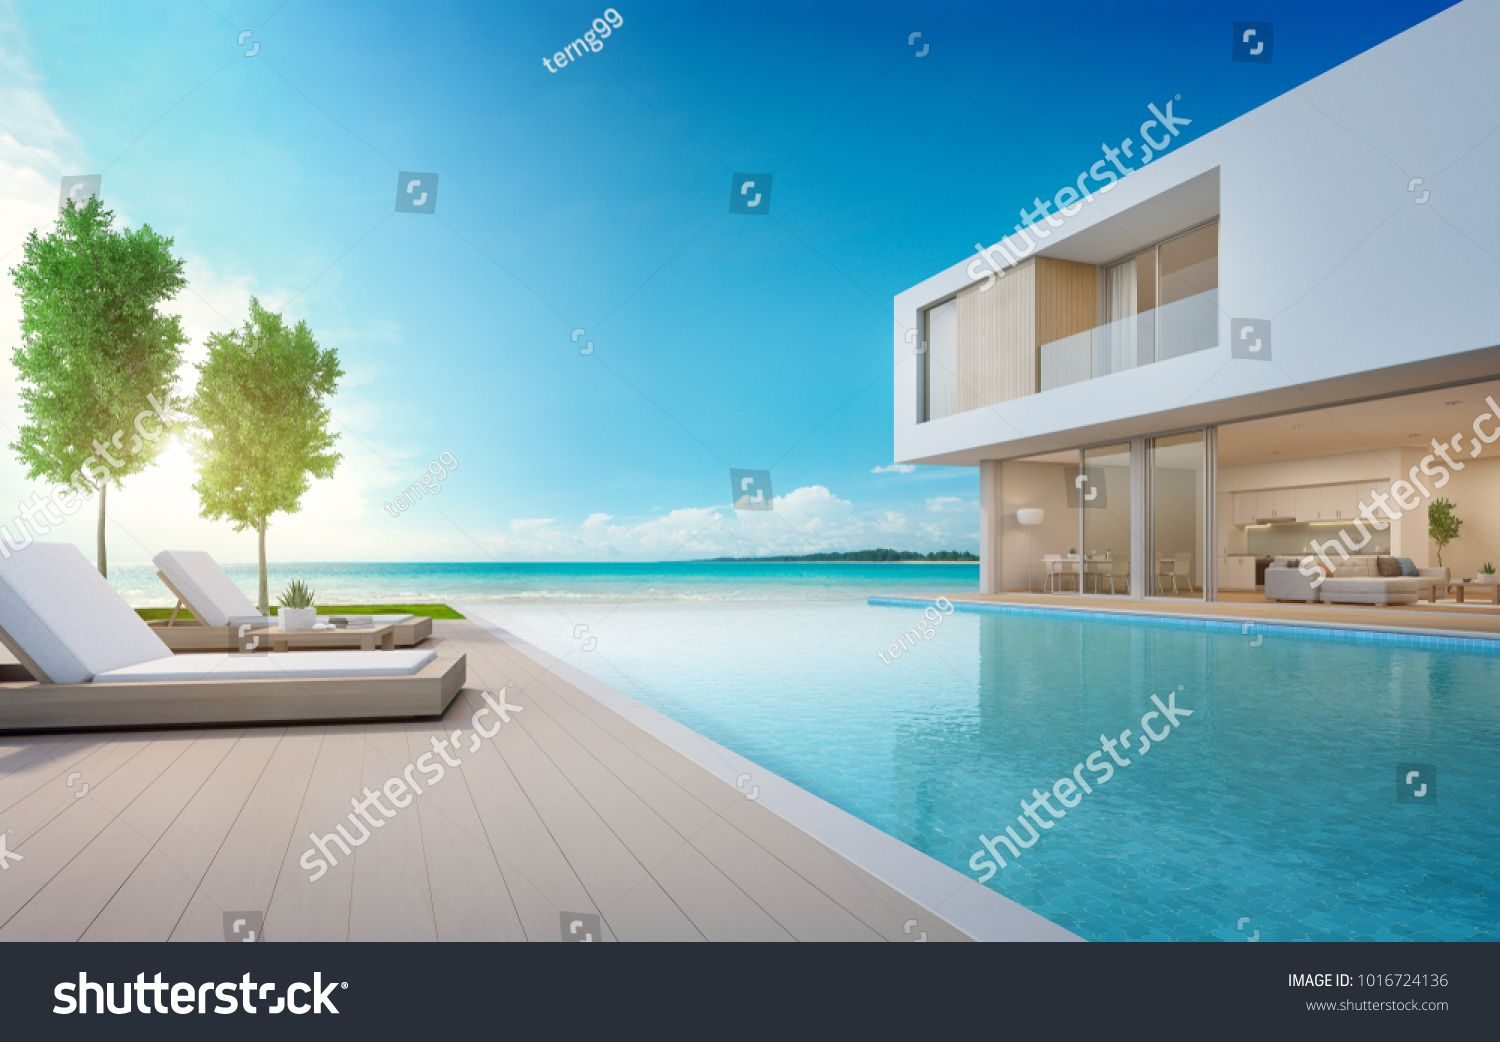 Luxury Beach House With Sea View Swimming Pool And Terrace In Modern Design Lounge Chairs On Wooden Floo Luxury Beach House Rental Property Modern Style Homes